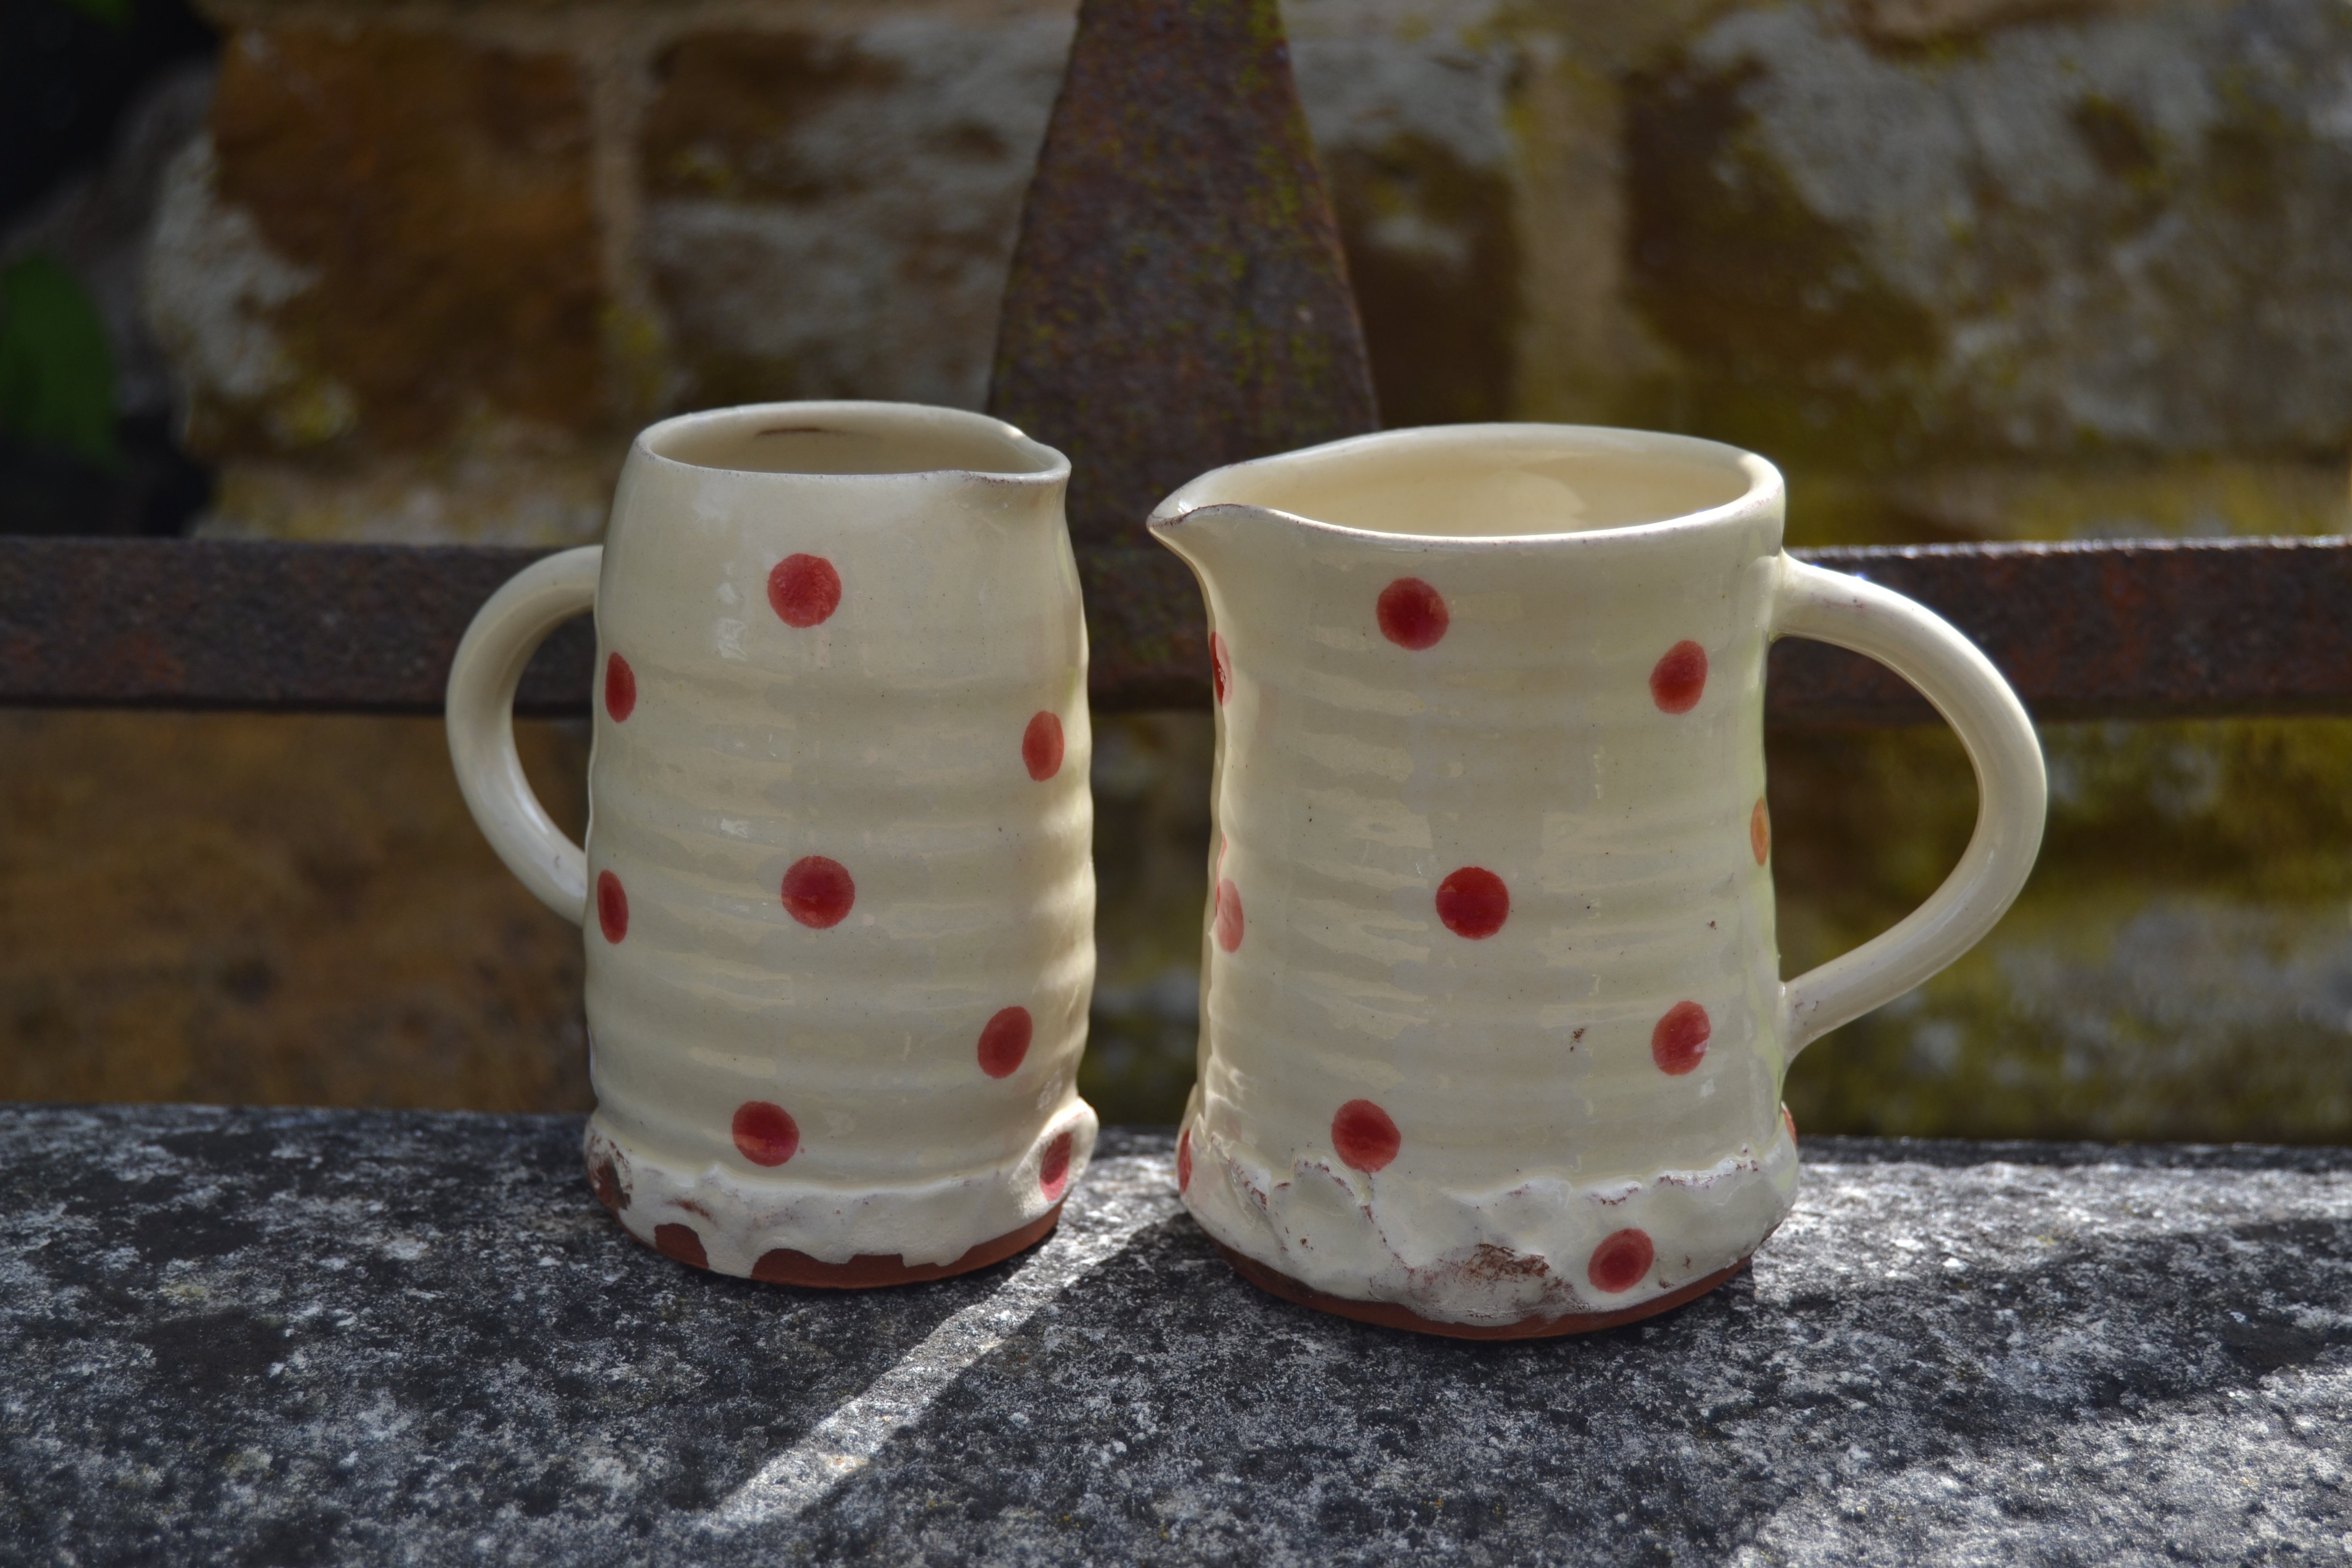 red spot jugs on roller